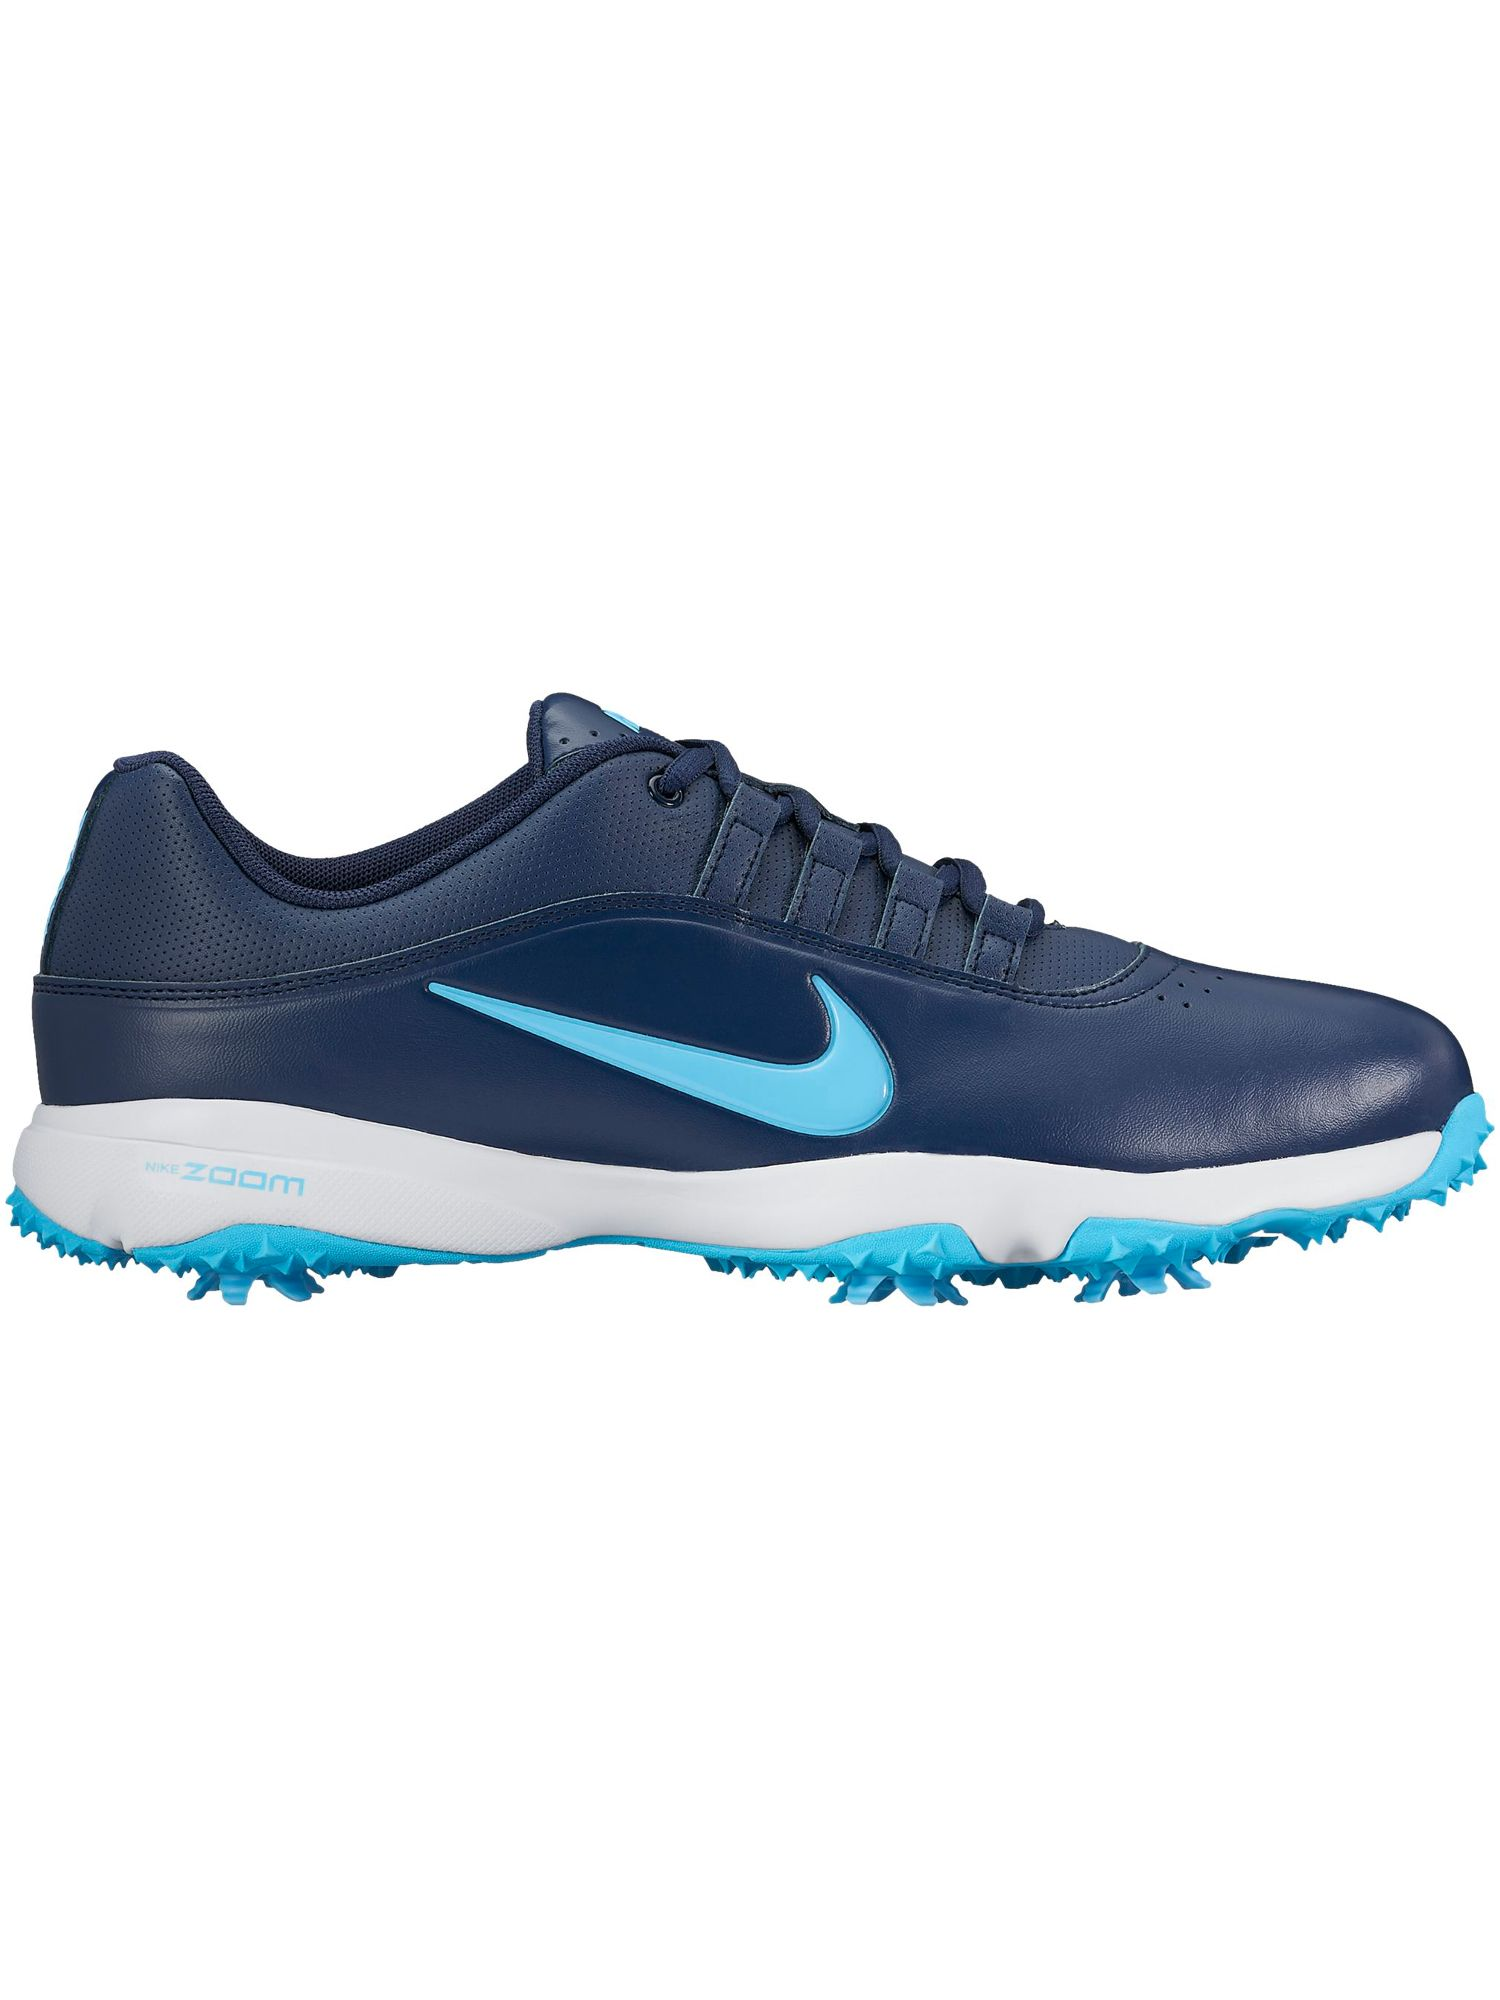 Nike Air Zoom Rival 5 Golf Shoes Navy & White